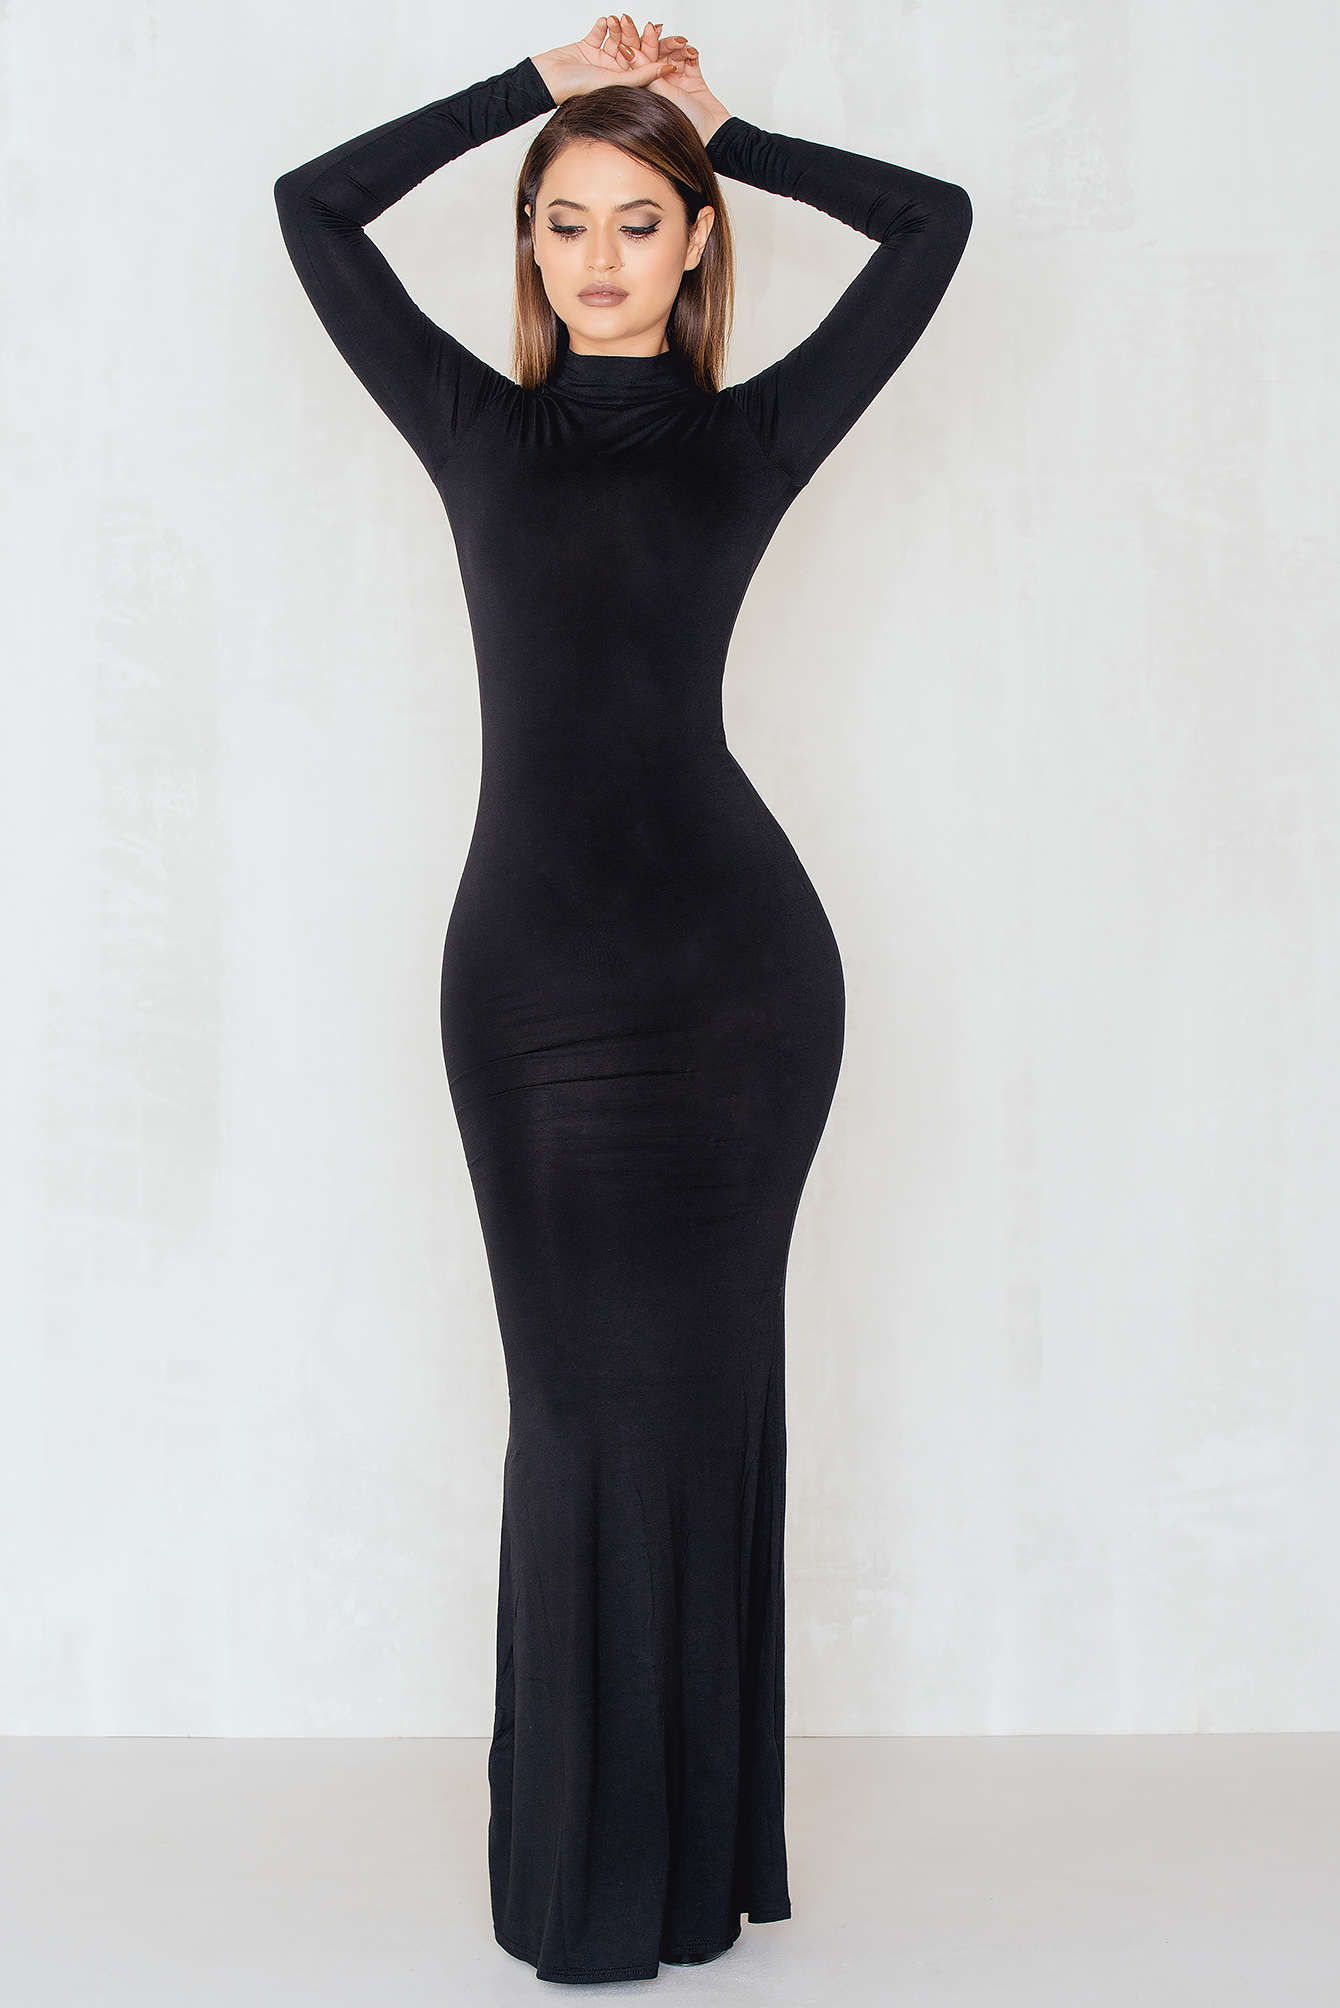 3872b96787a Prepare to crush  em in this fantastic black dress! The High Neck Long  Sleeve